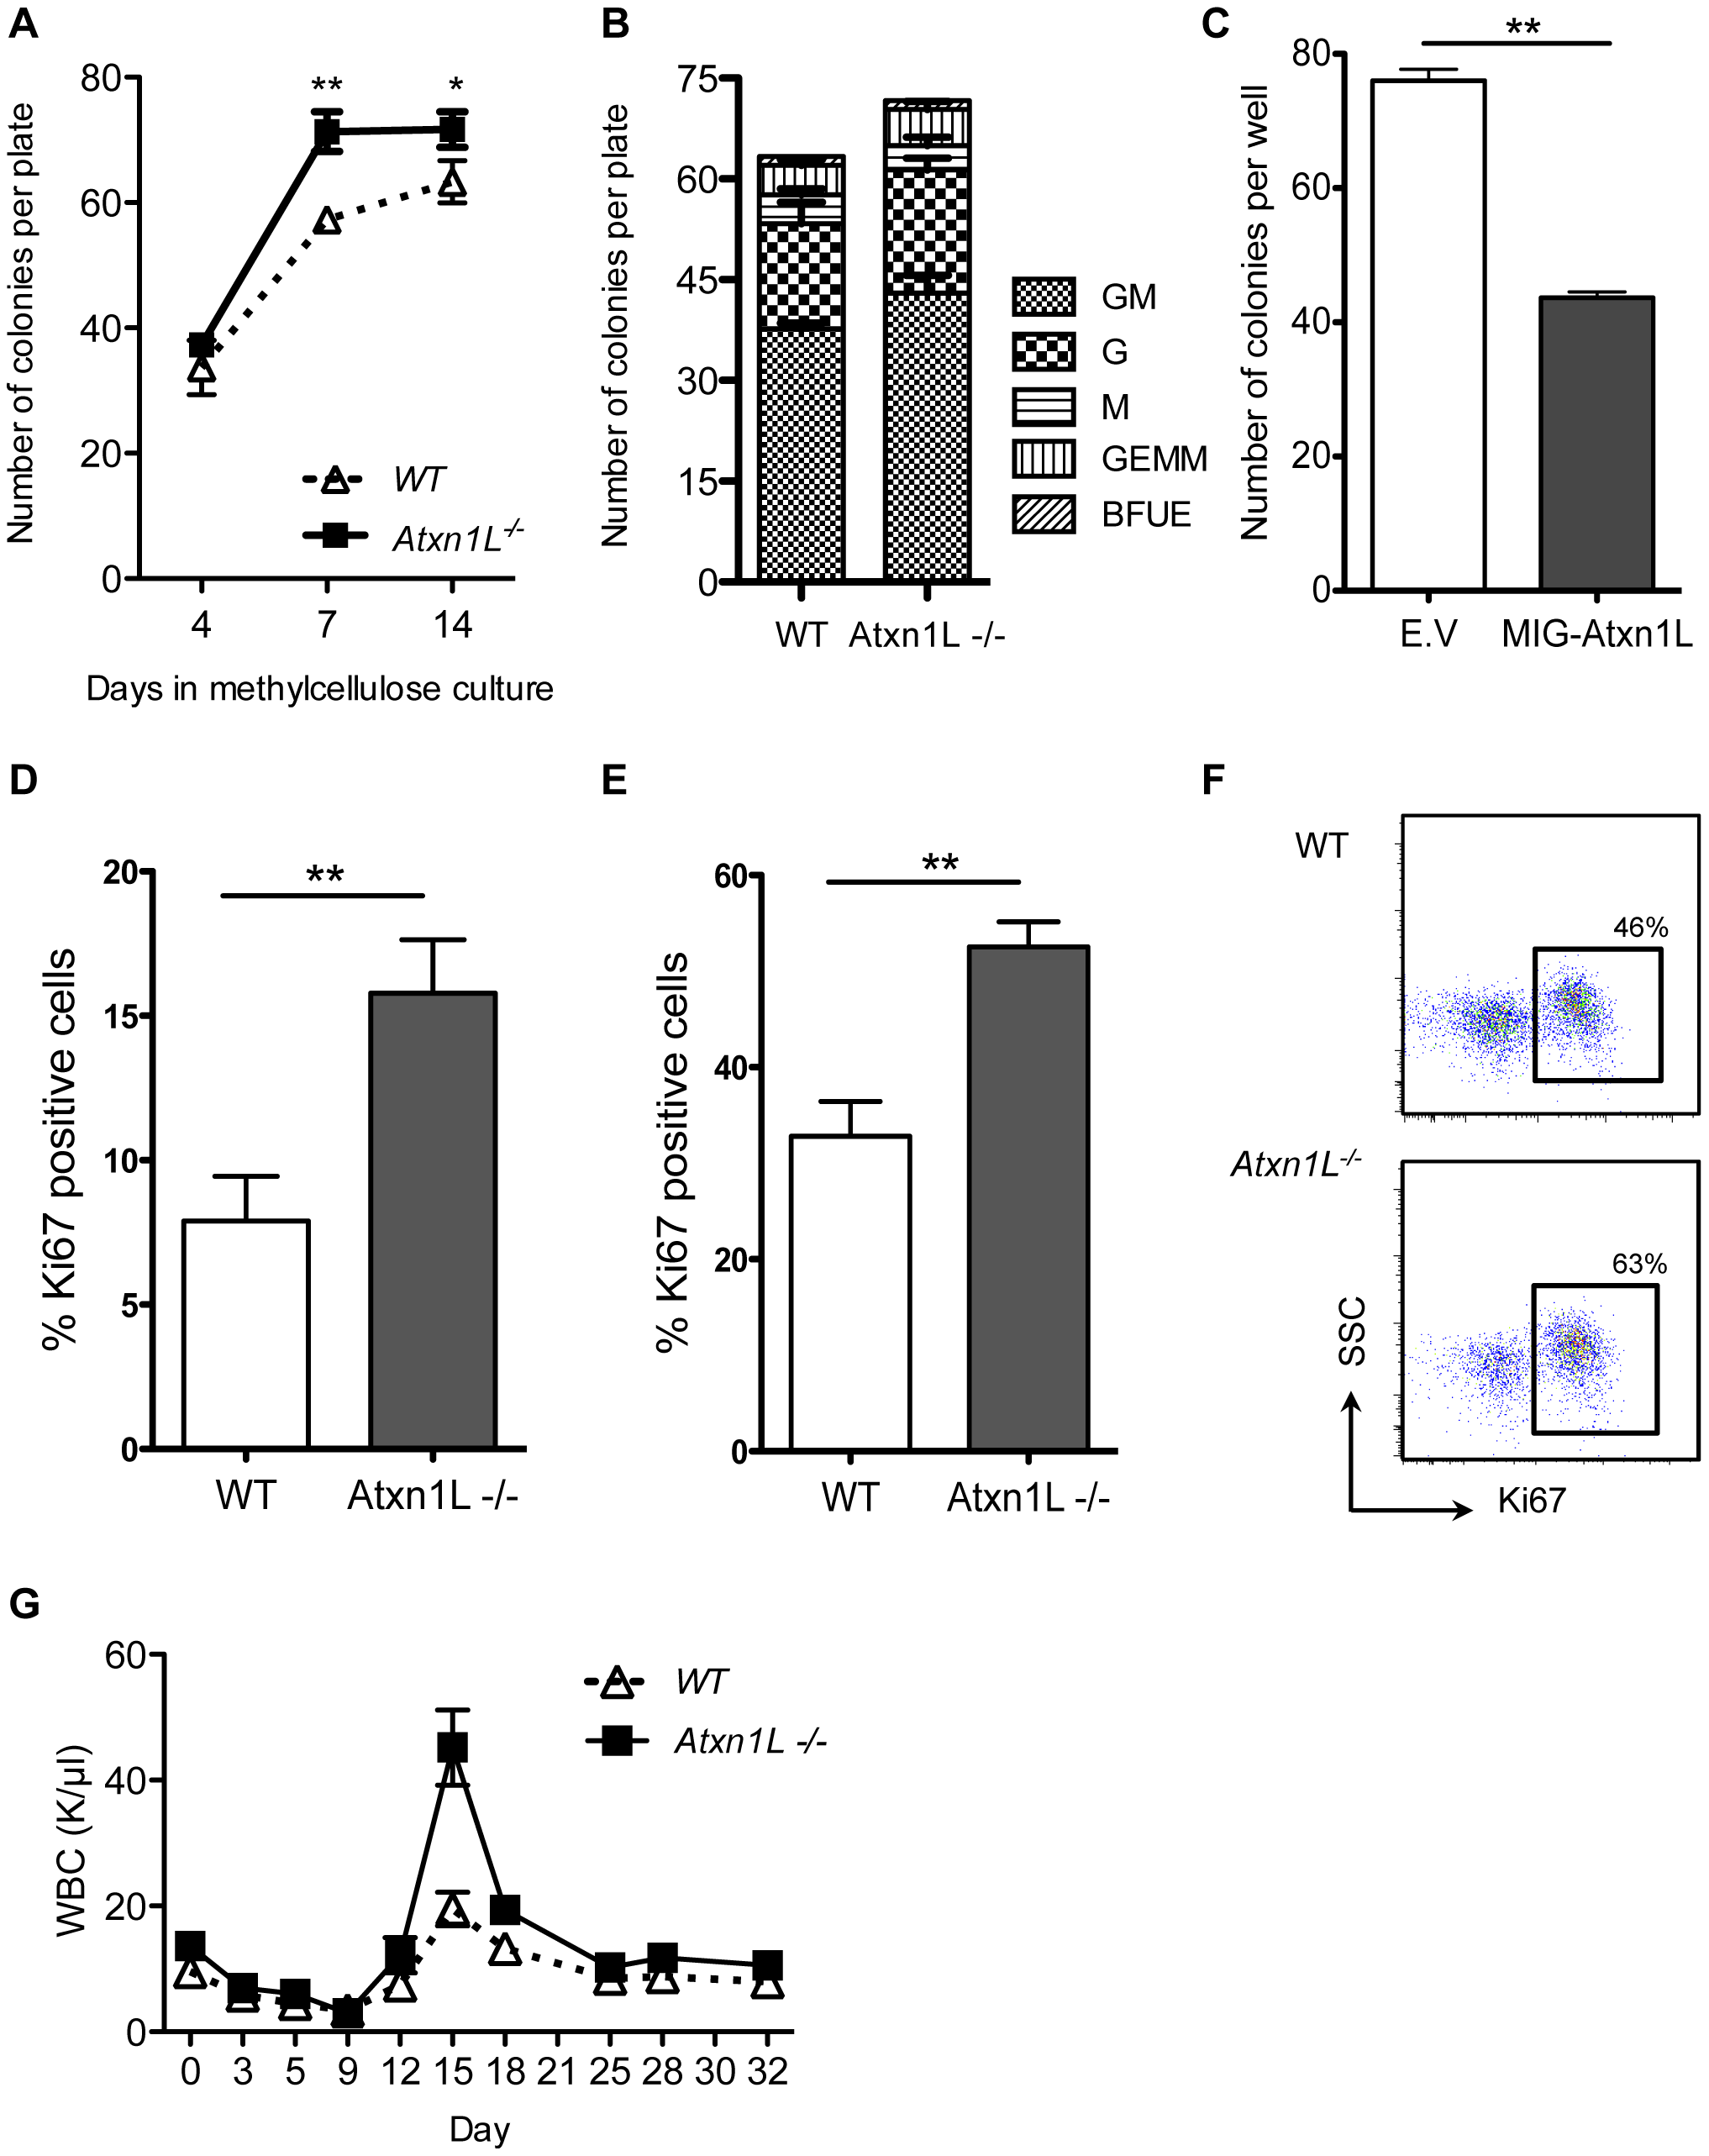 Loss of <i>Atxn1L</i> results in more proliferative hematopoietic stem and progenitor cells.